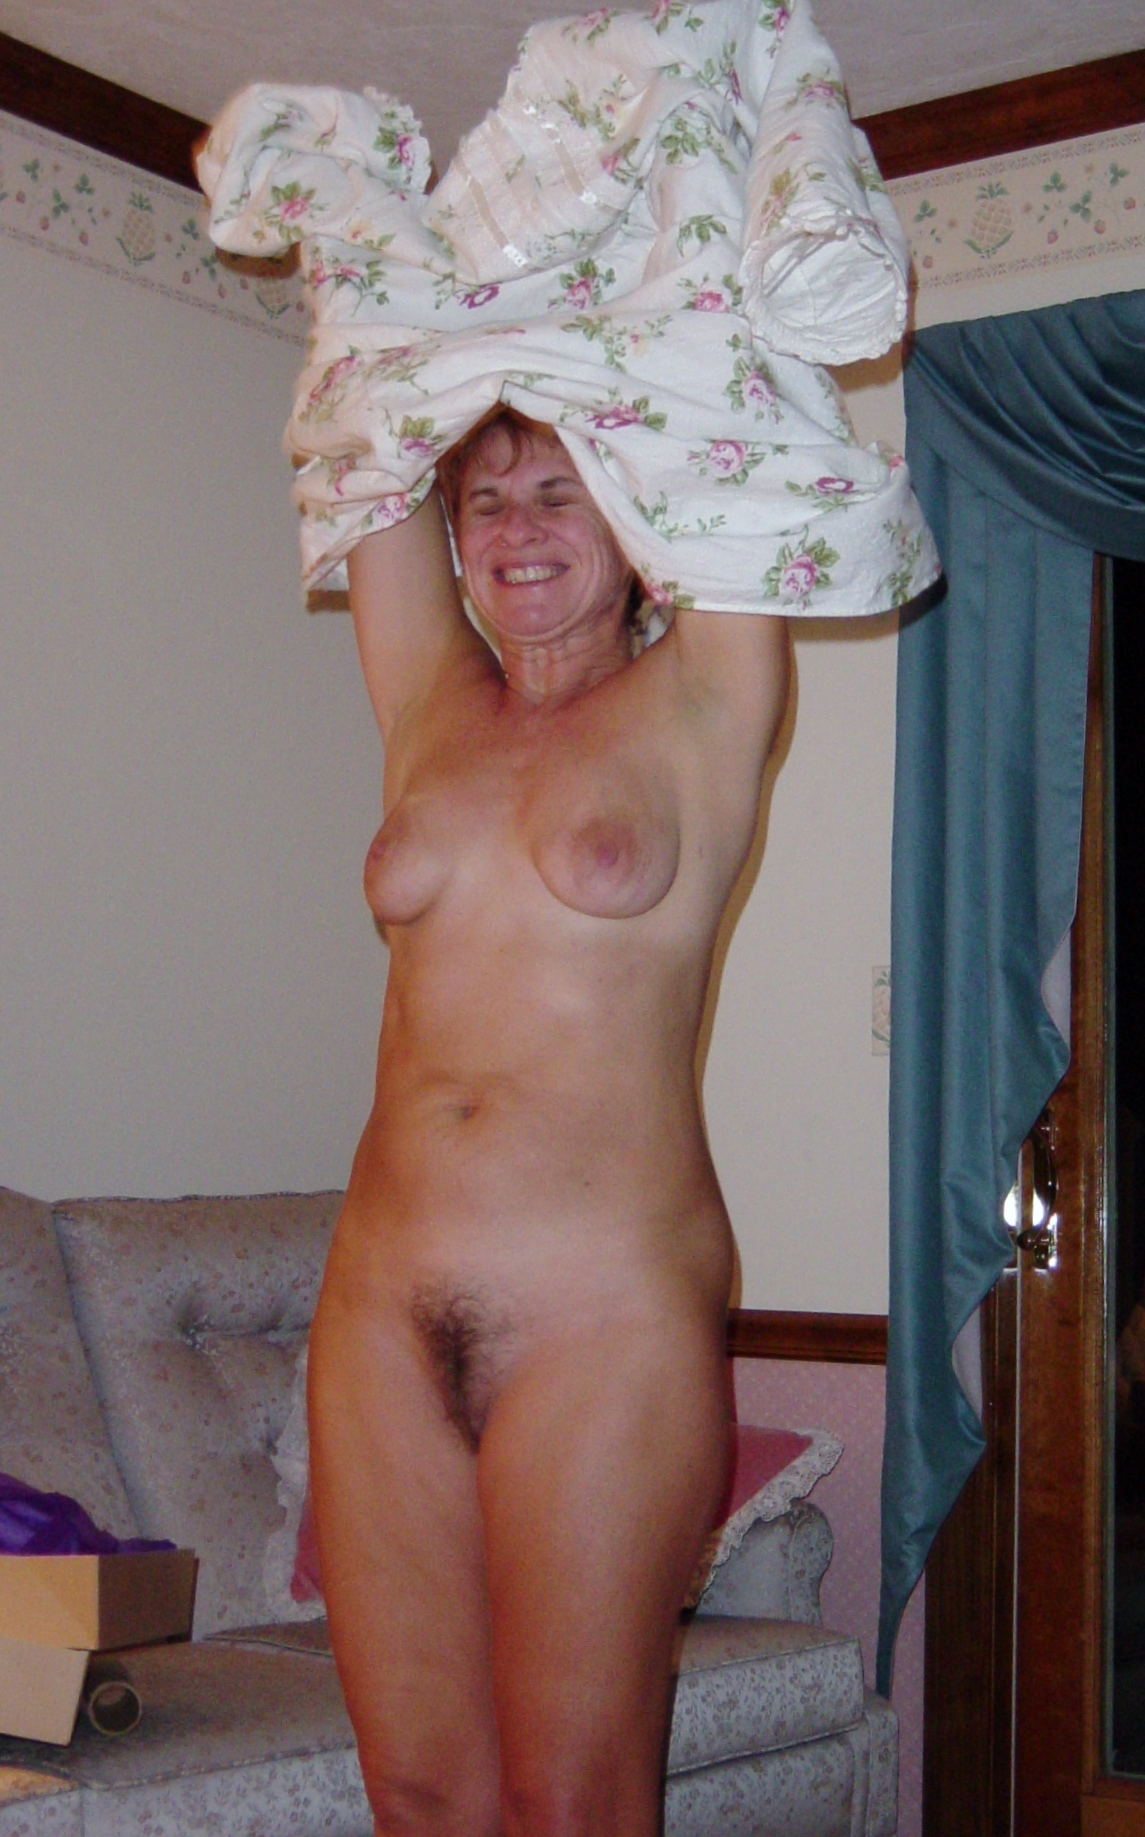 Dressed And Undressed Photos Of This Horny Couple - Ass Point-7256